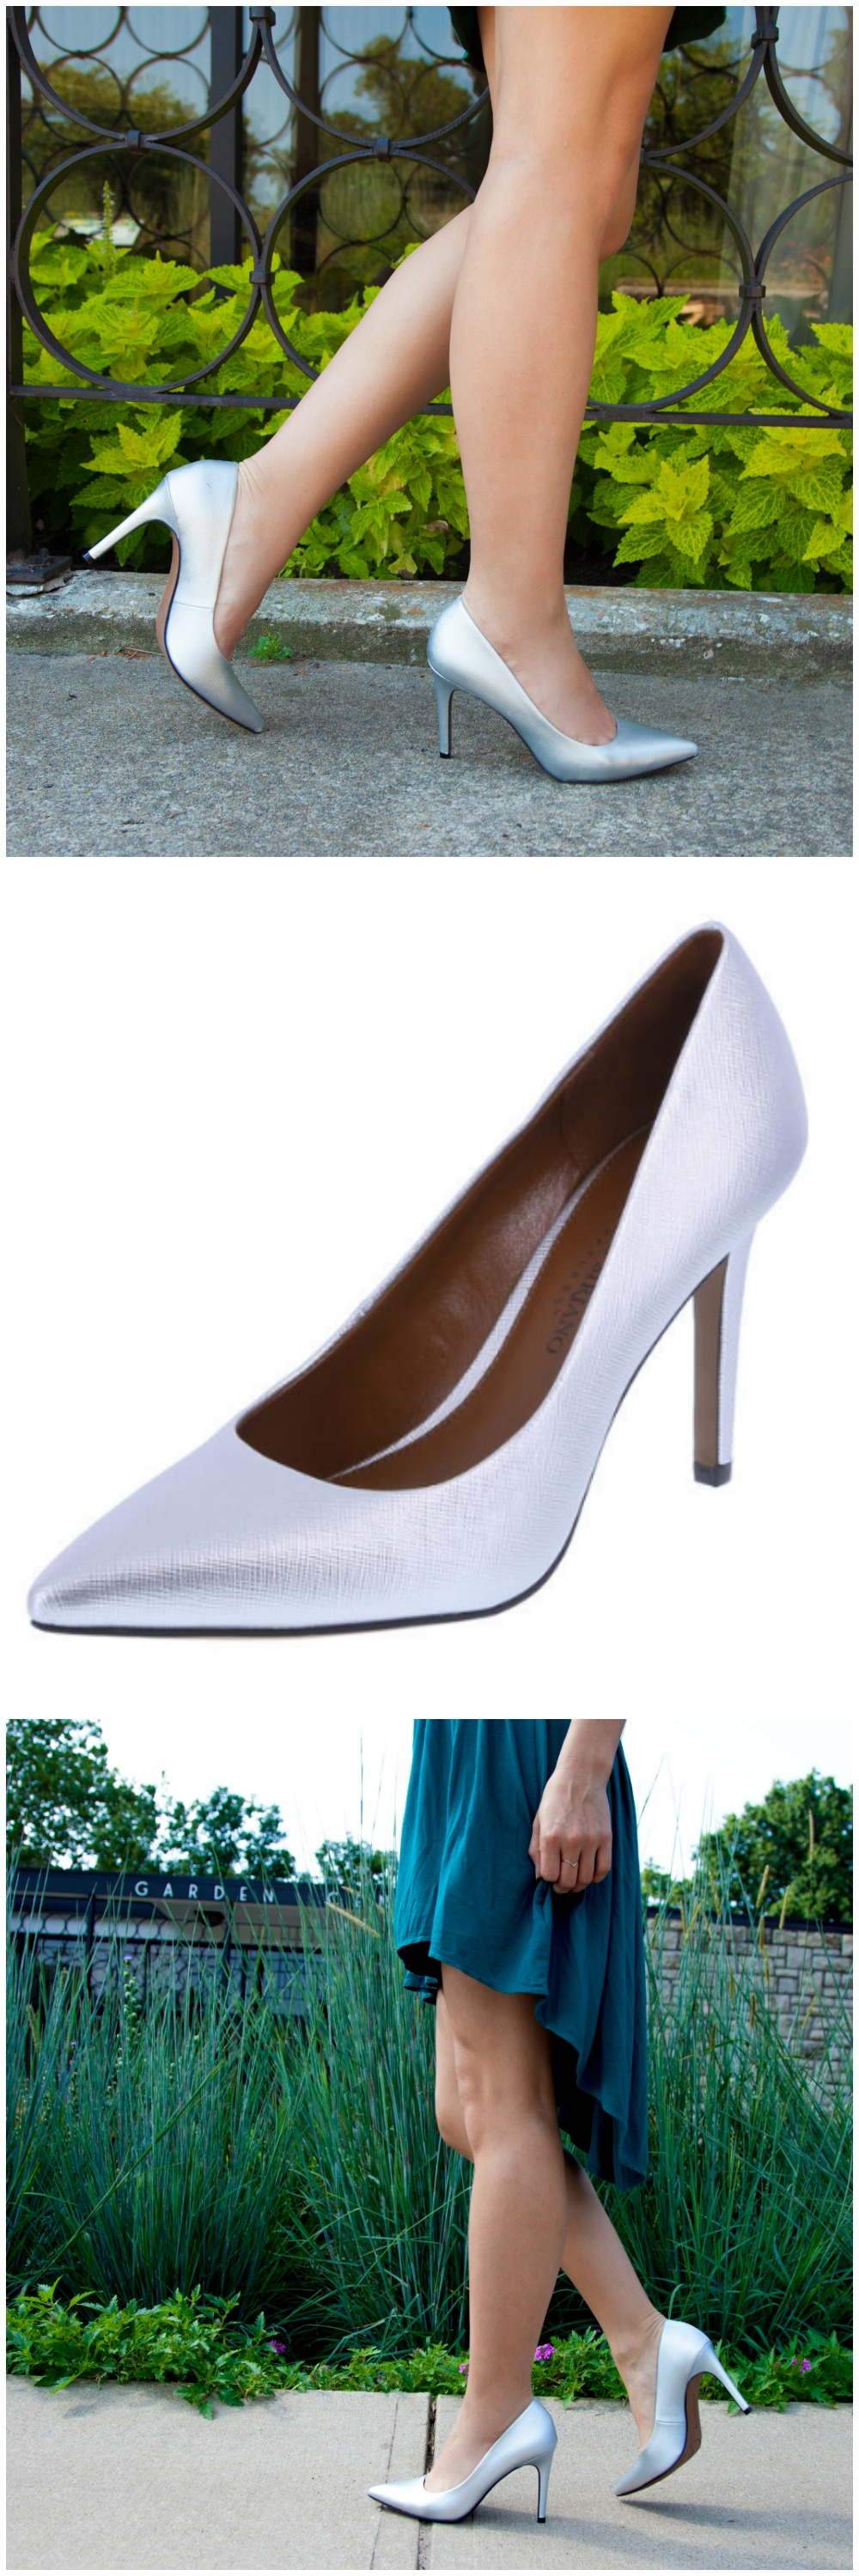 7dd1a5c0788 Add a little shine to your office look with the silver Habit pump from  designer Christian Siriano!